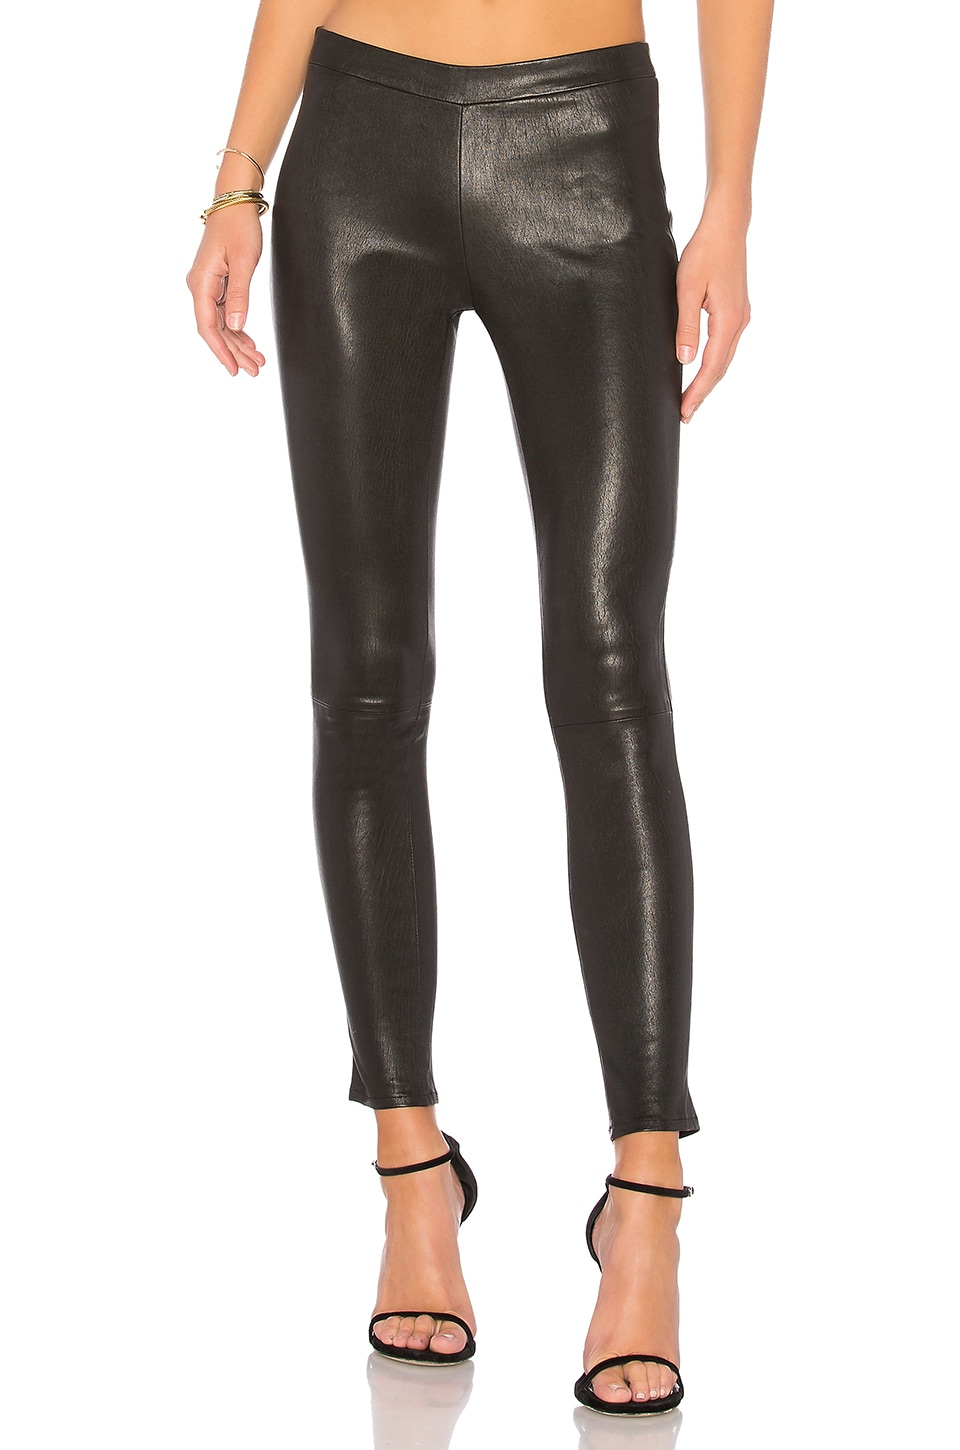 J Brand Leather Pull Up Legging in Black